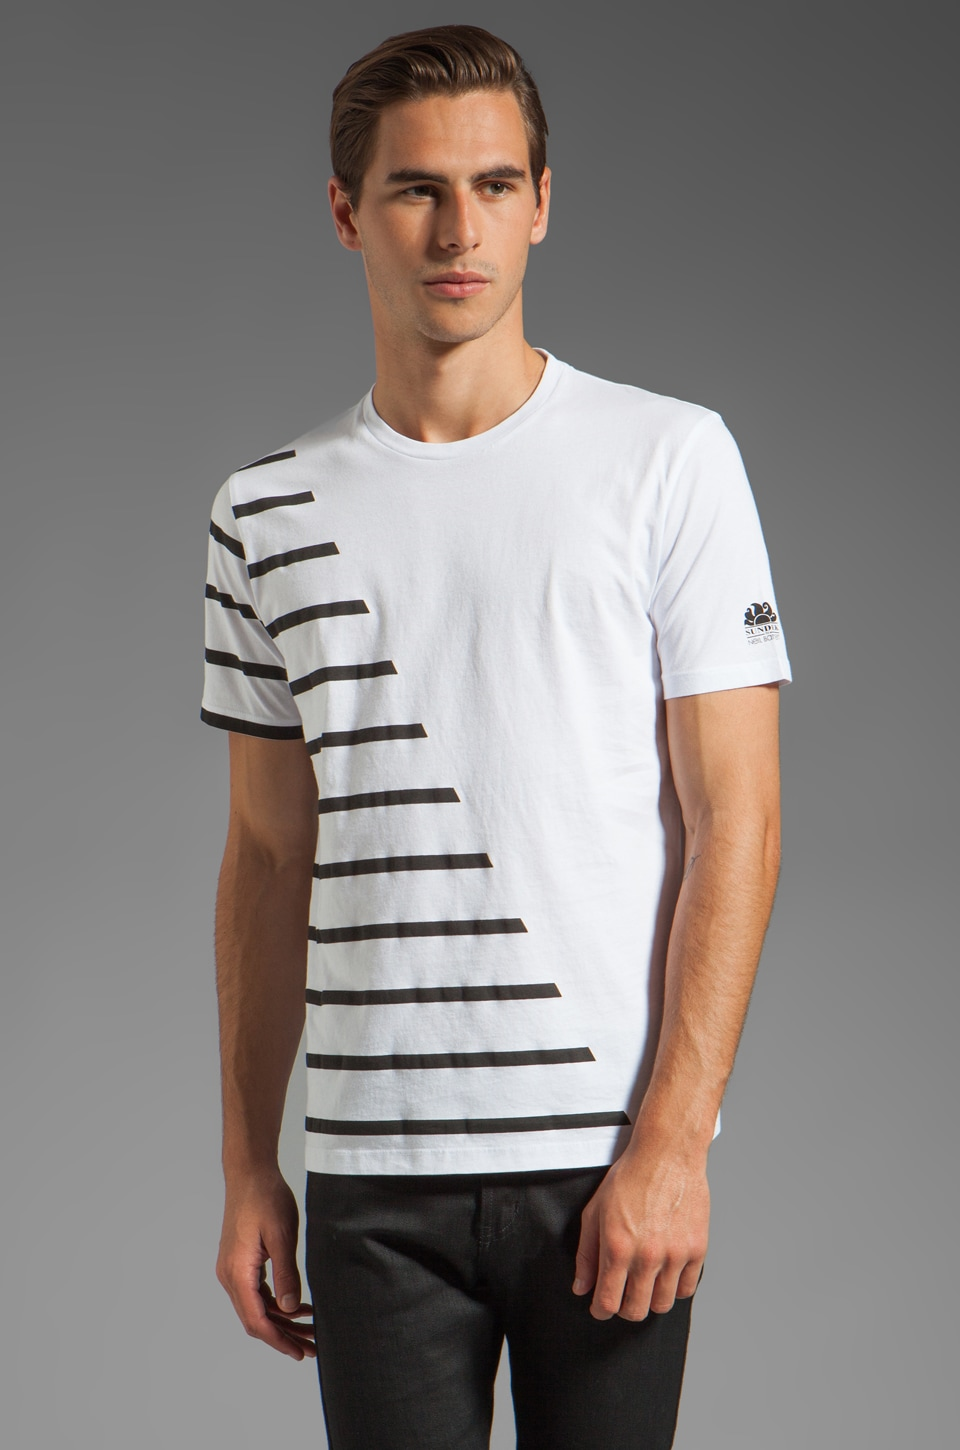 Sundek by Neil Barrett Blocked Striping Crew Neck in White